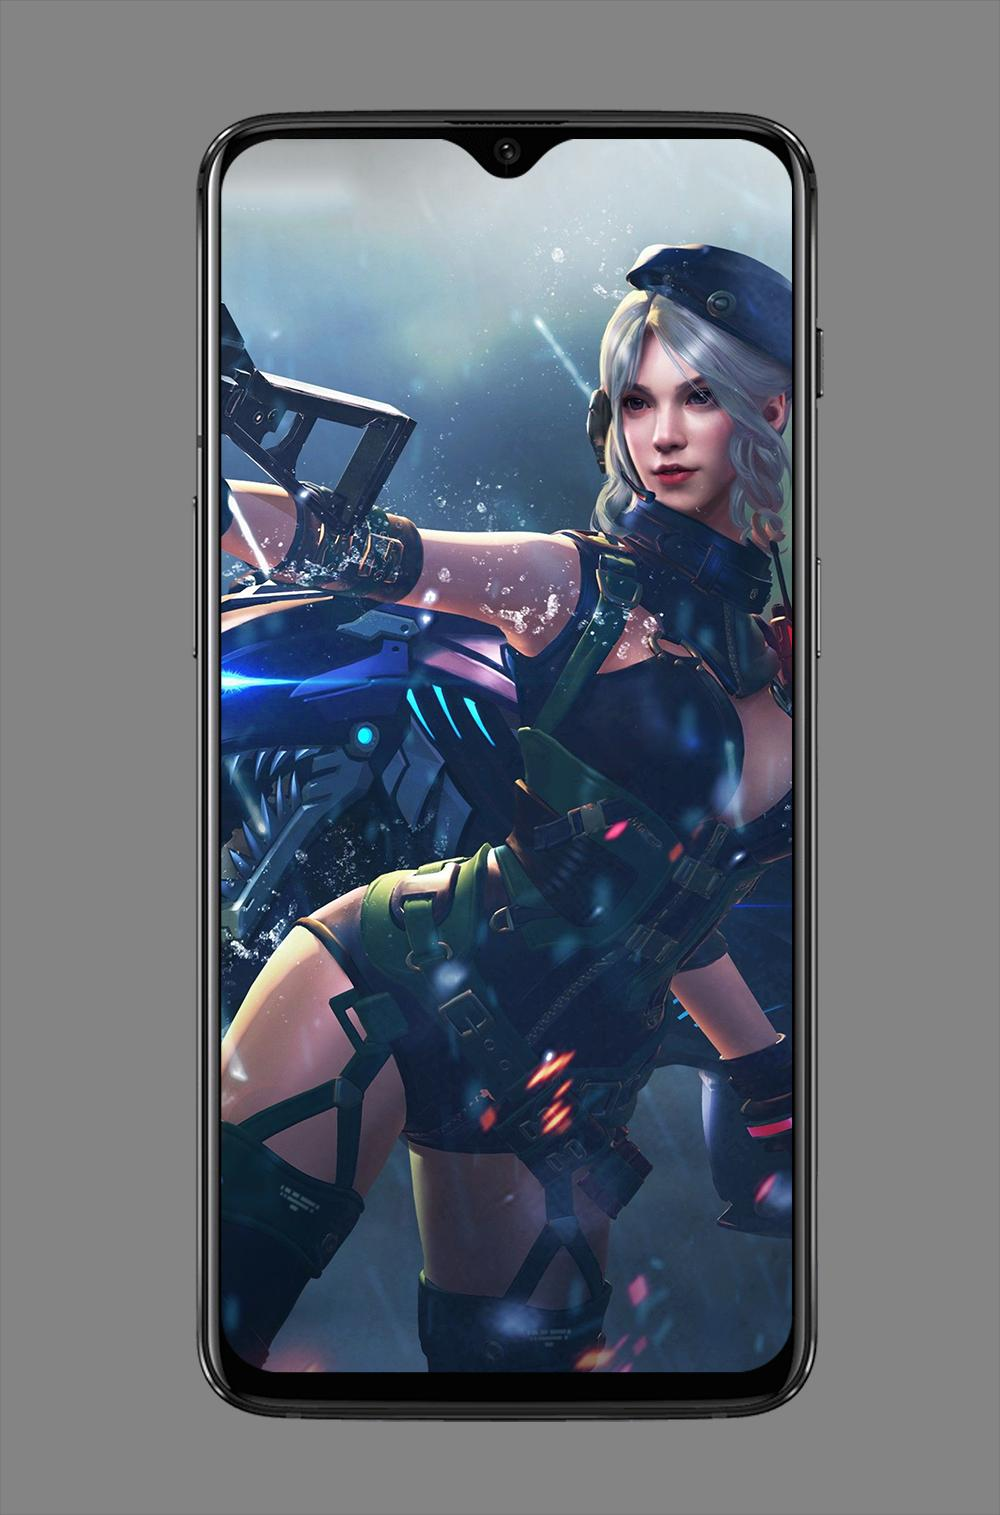 Free-Fire Wallpapers FF 4K for Android - APK Download